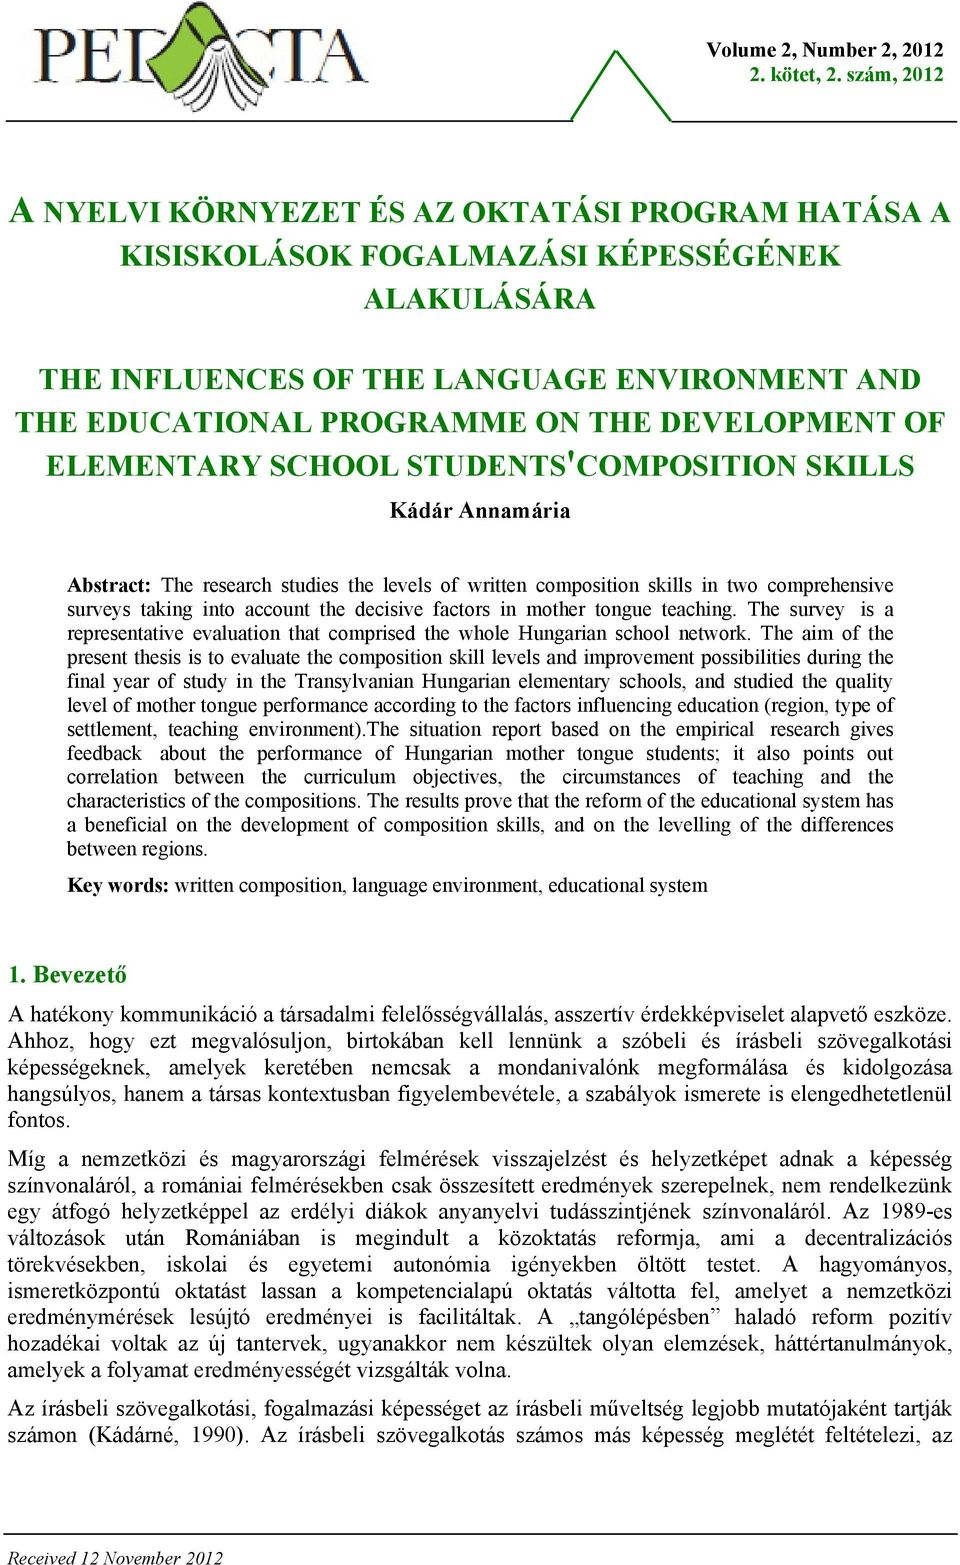 DEVELOPMENT OF ELEMENTARY SCHOOL STUDENTS'COMPOSITION SKILLS Kádár Annamária Abstract: The research studies the levels of written composition skills in two comprehensive surveys taking into account